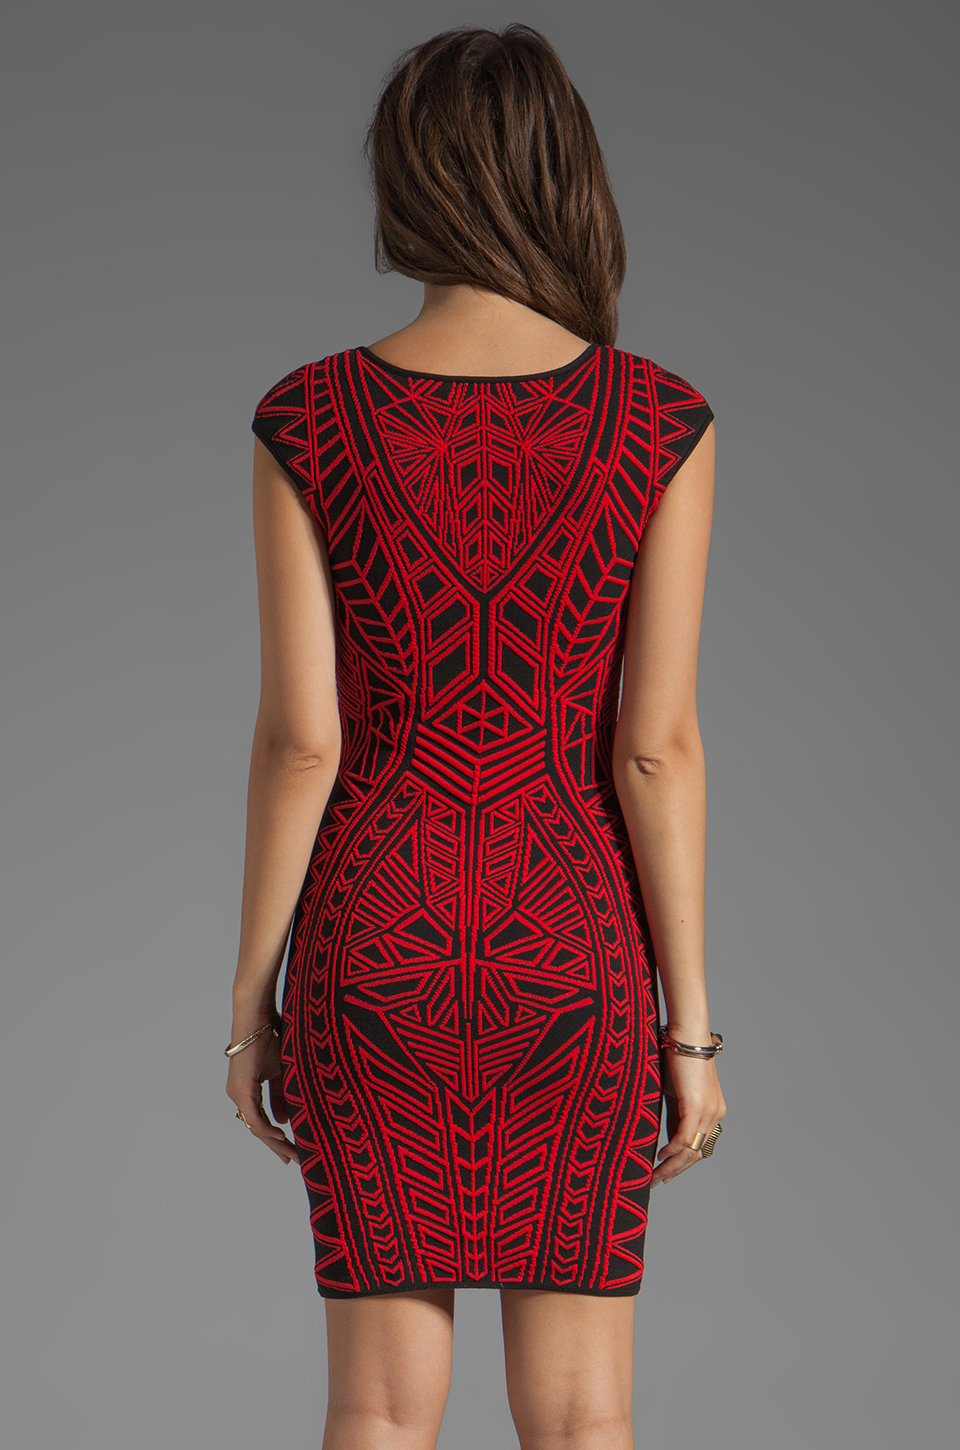 RVN Abstract Jacquard Mini Dress in Red/Black